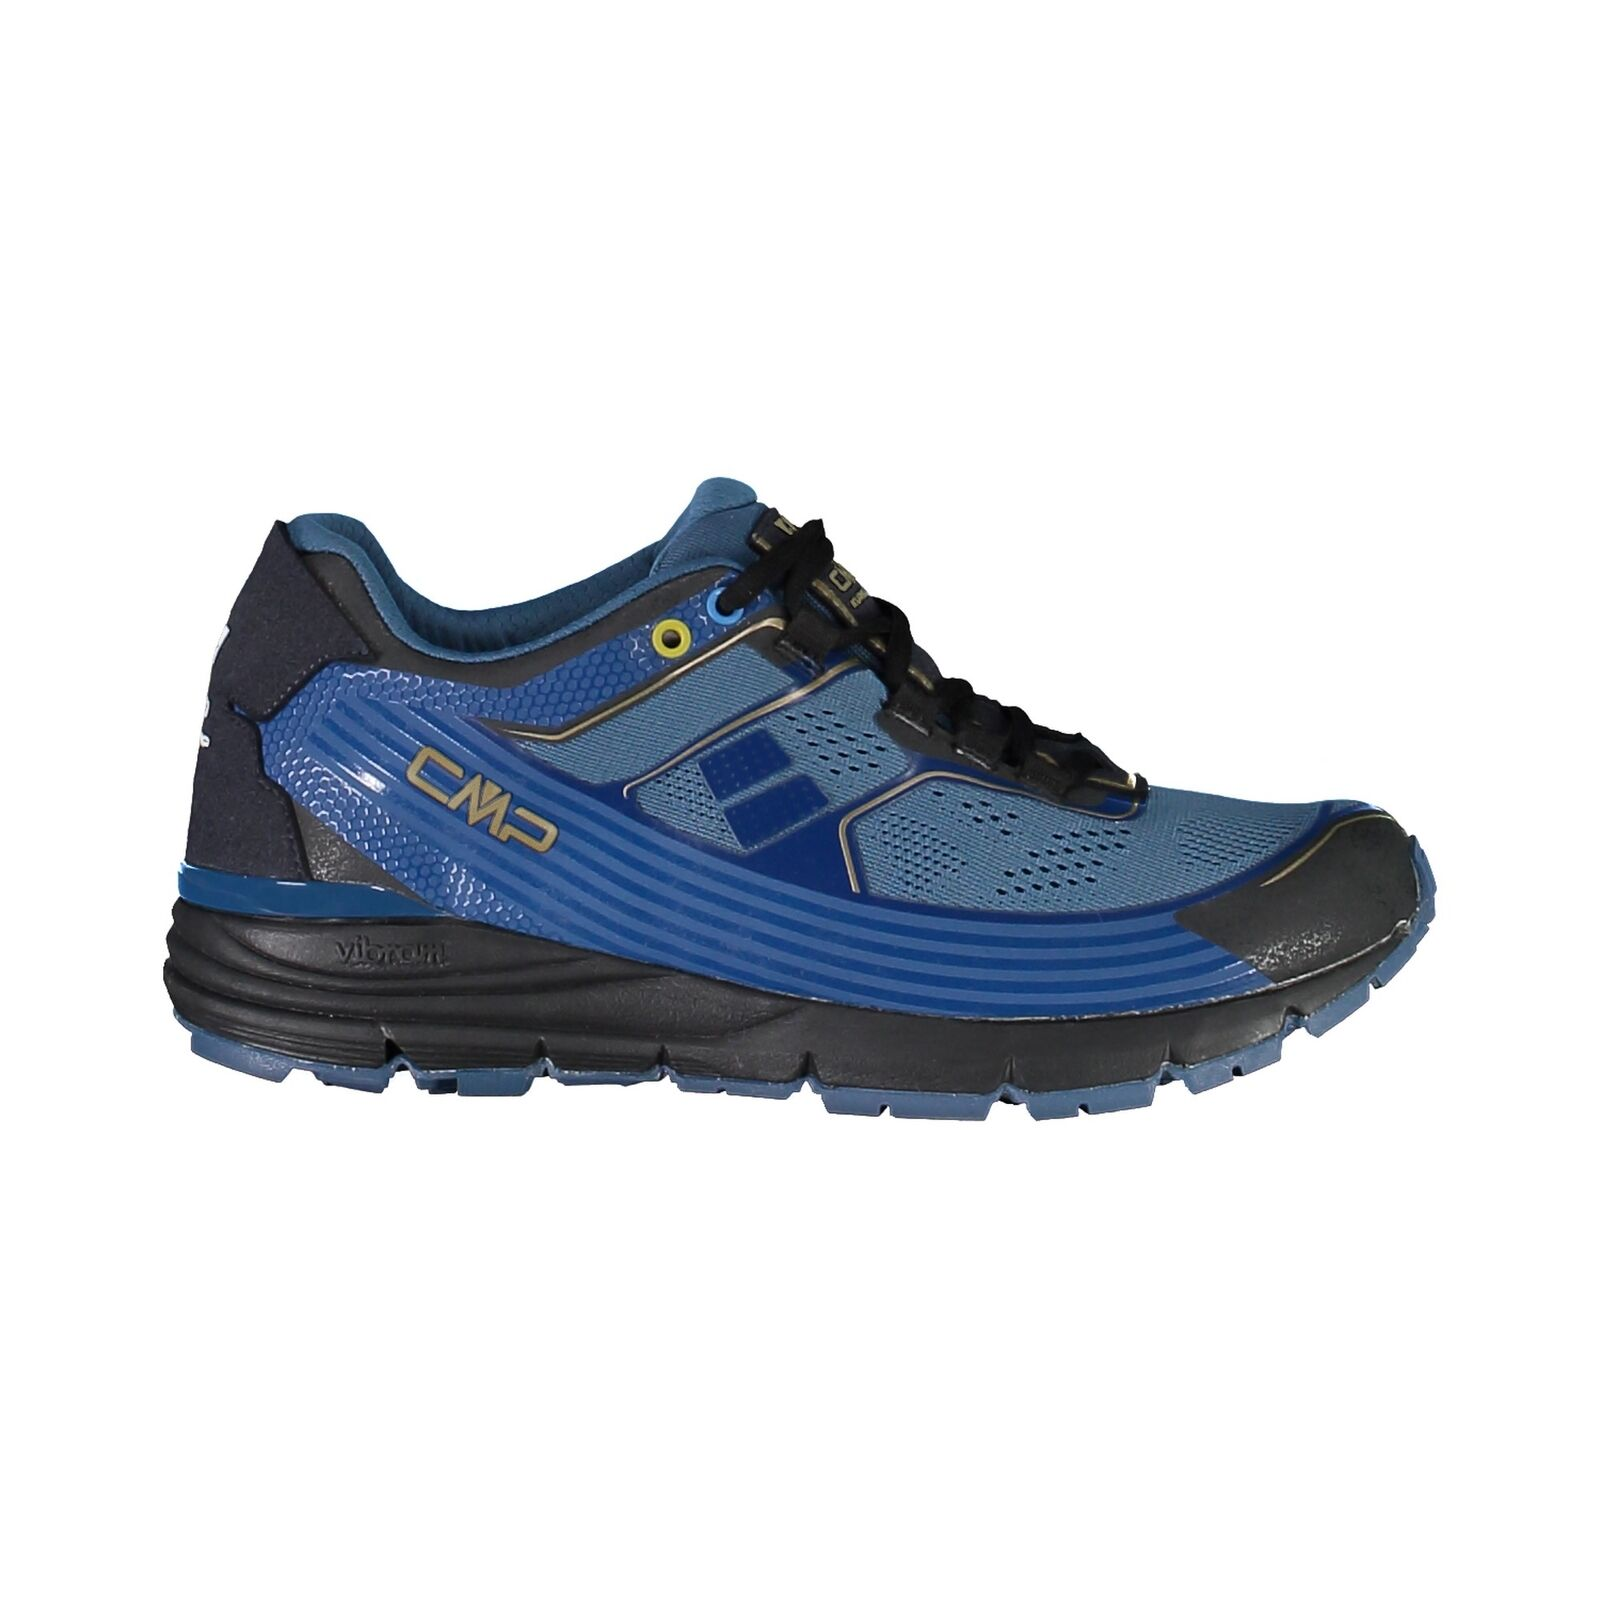 CMP Running  Sports shoes Kursa Trail shoes Wp bluee Waterproof Mesh  presenting all the latest high street fashion